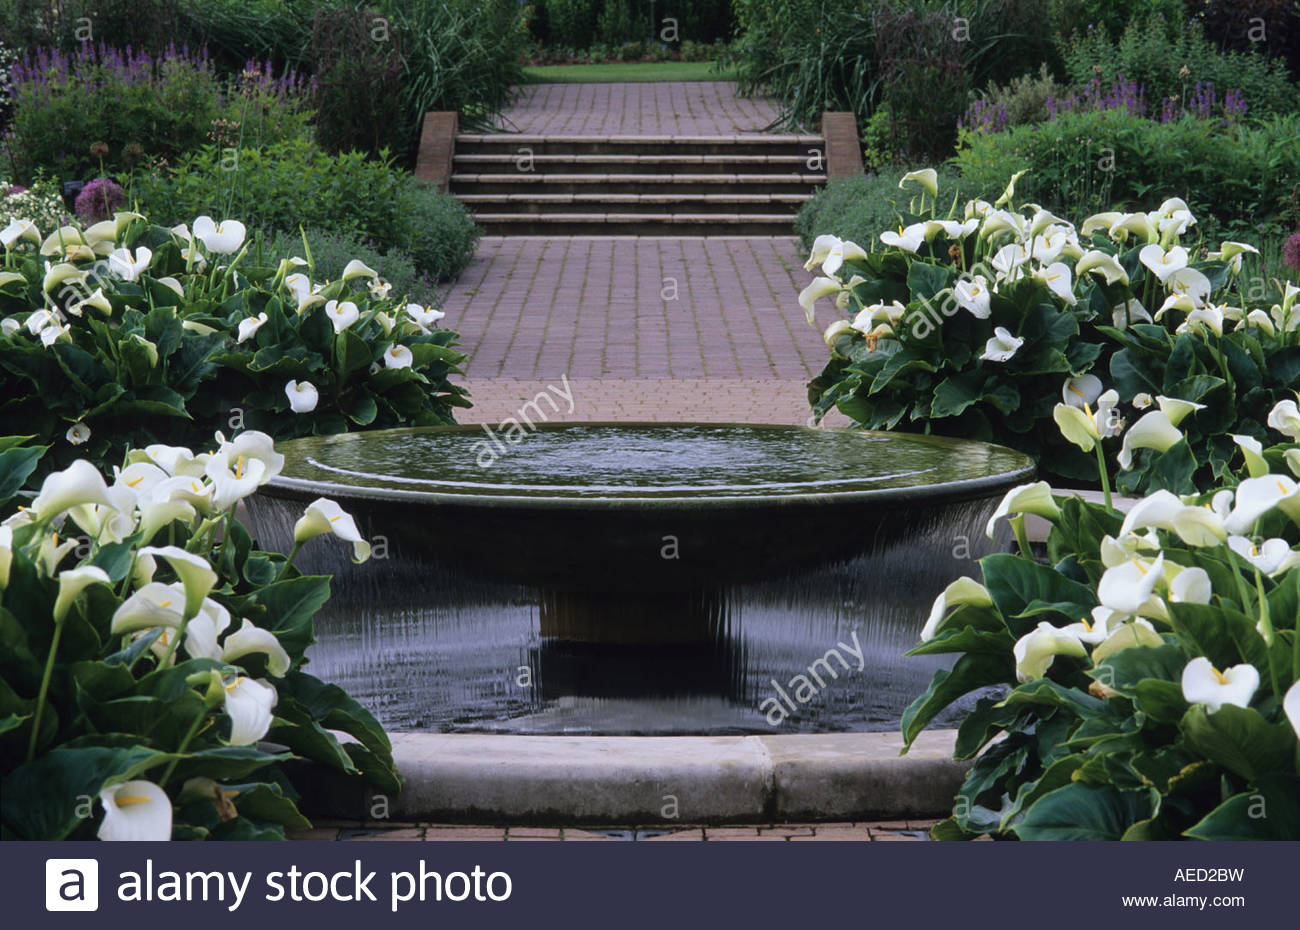 RHS Wisley Surrey Design Penelope Hobhouse Contemporary Water Feature  Fountain As Focal Point